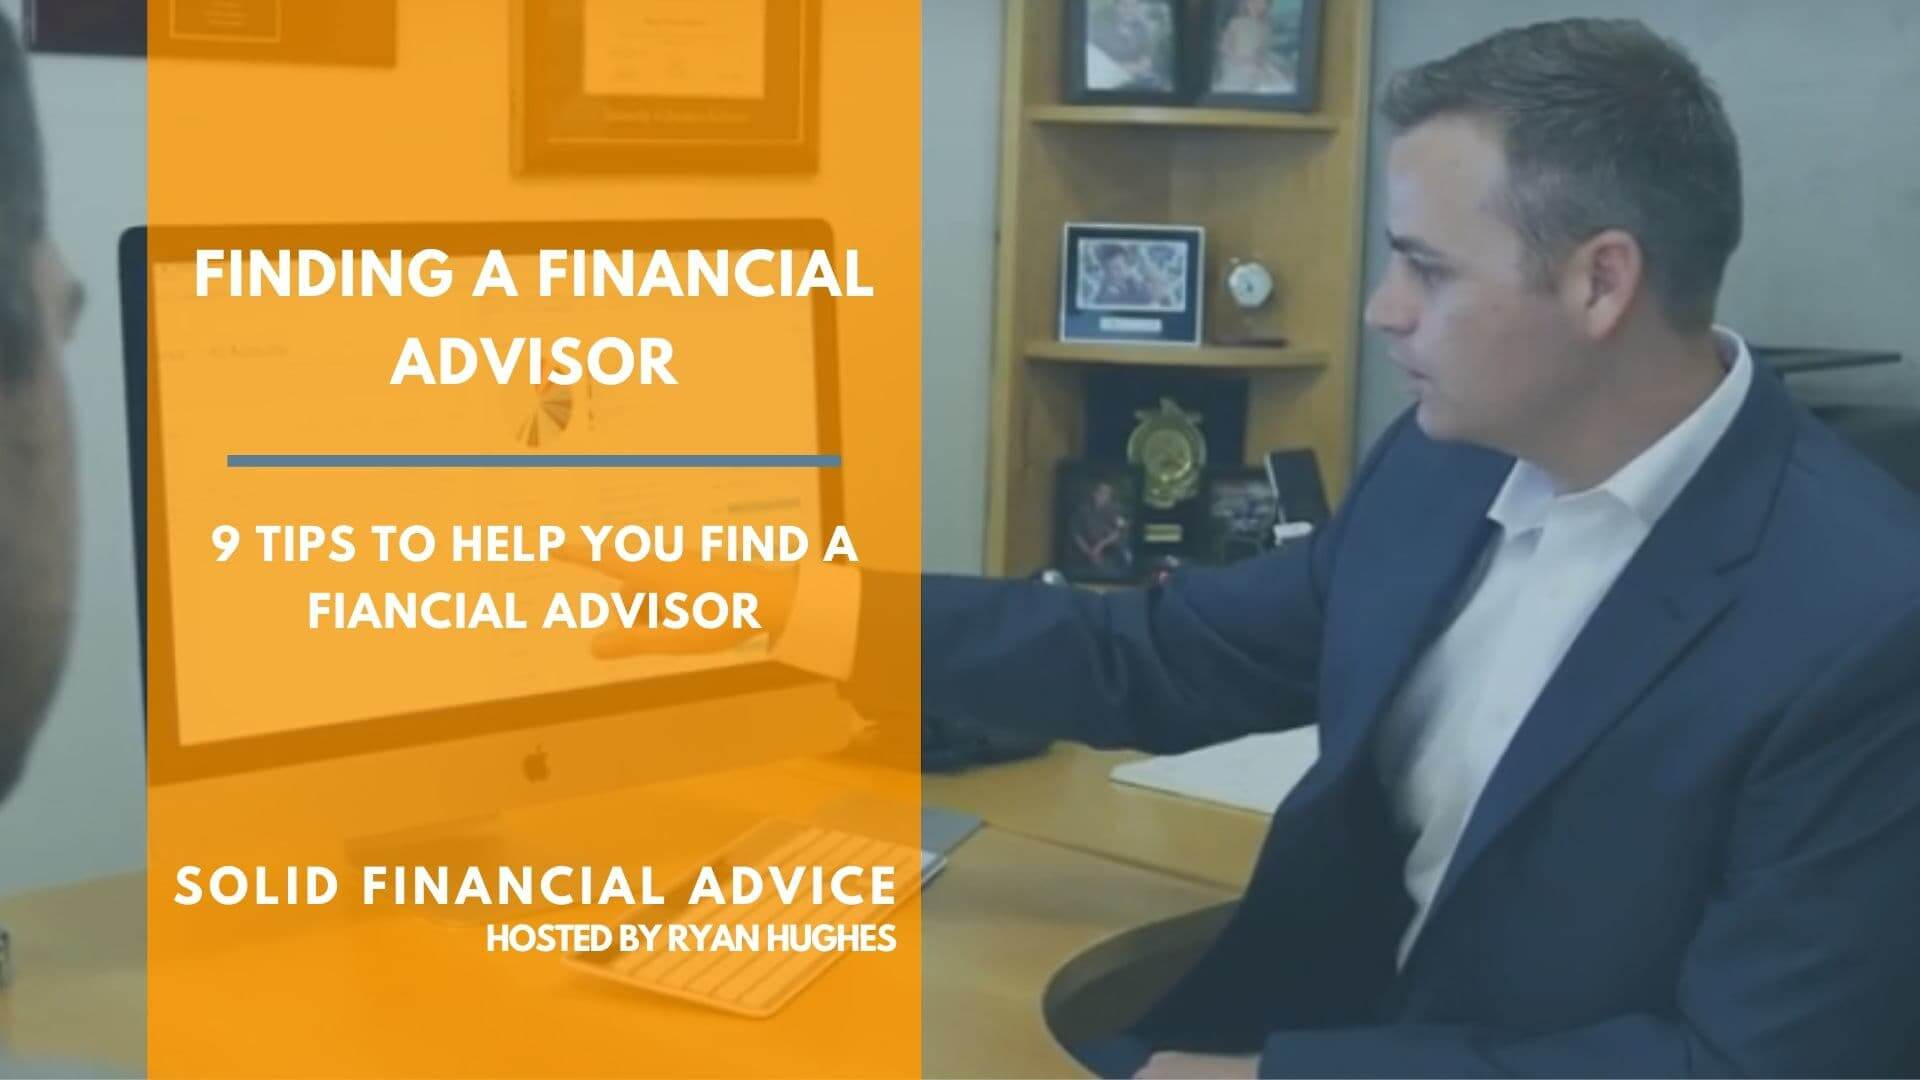 Tips To Find A Financial Advisor